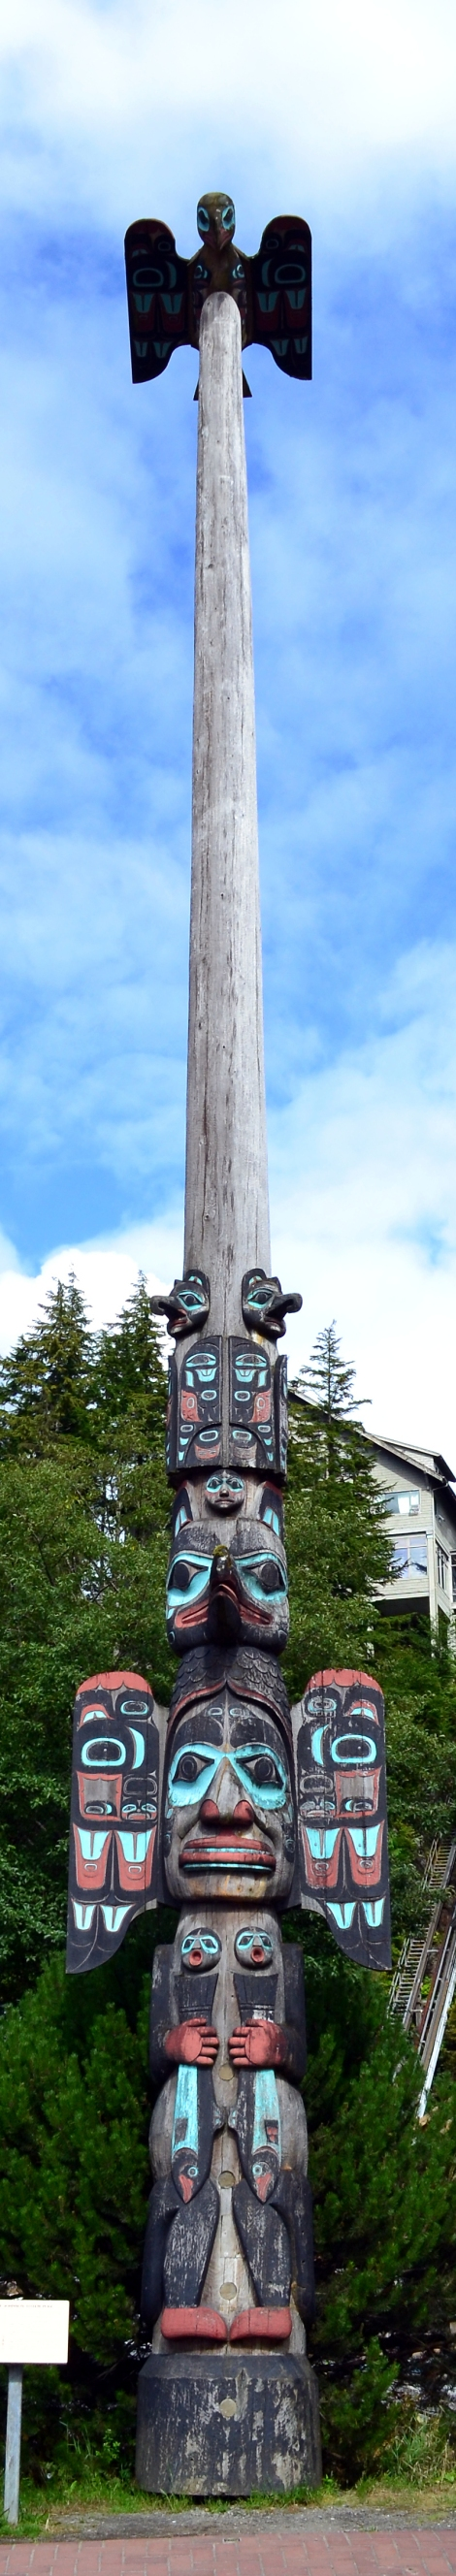 walking tour, Ketchikan, Alaska